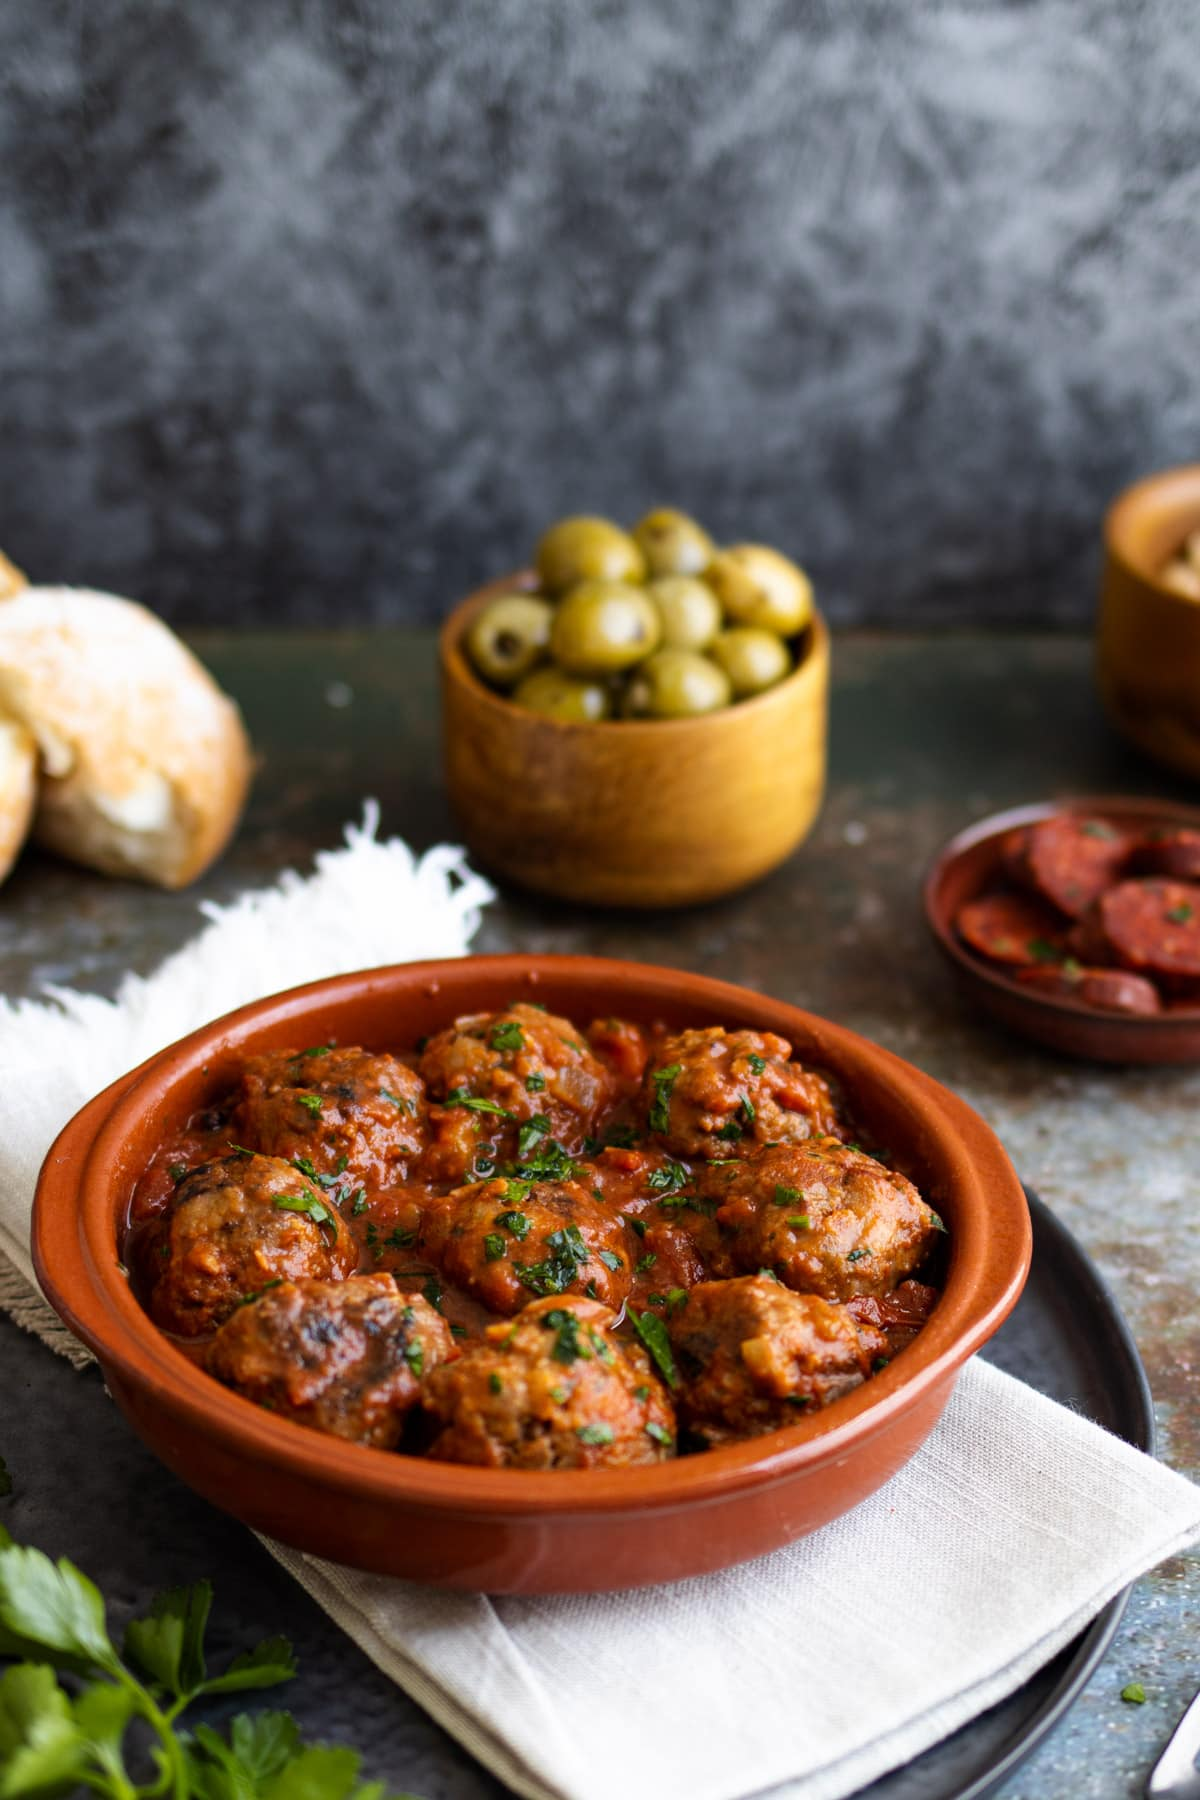 Spanish meatballs in a bowl with cashews and olives